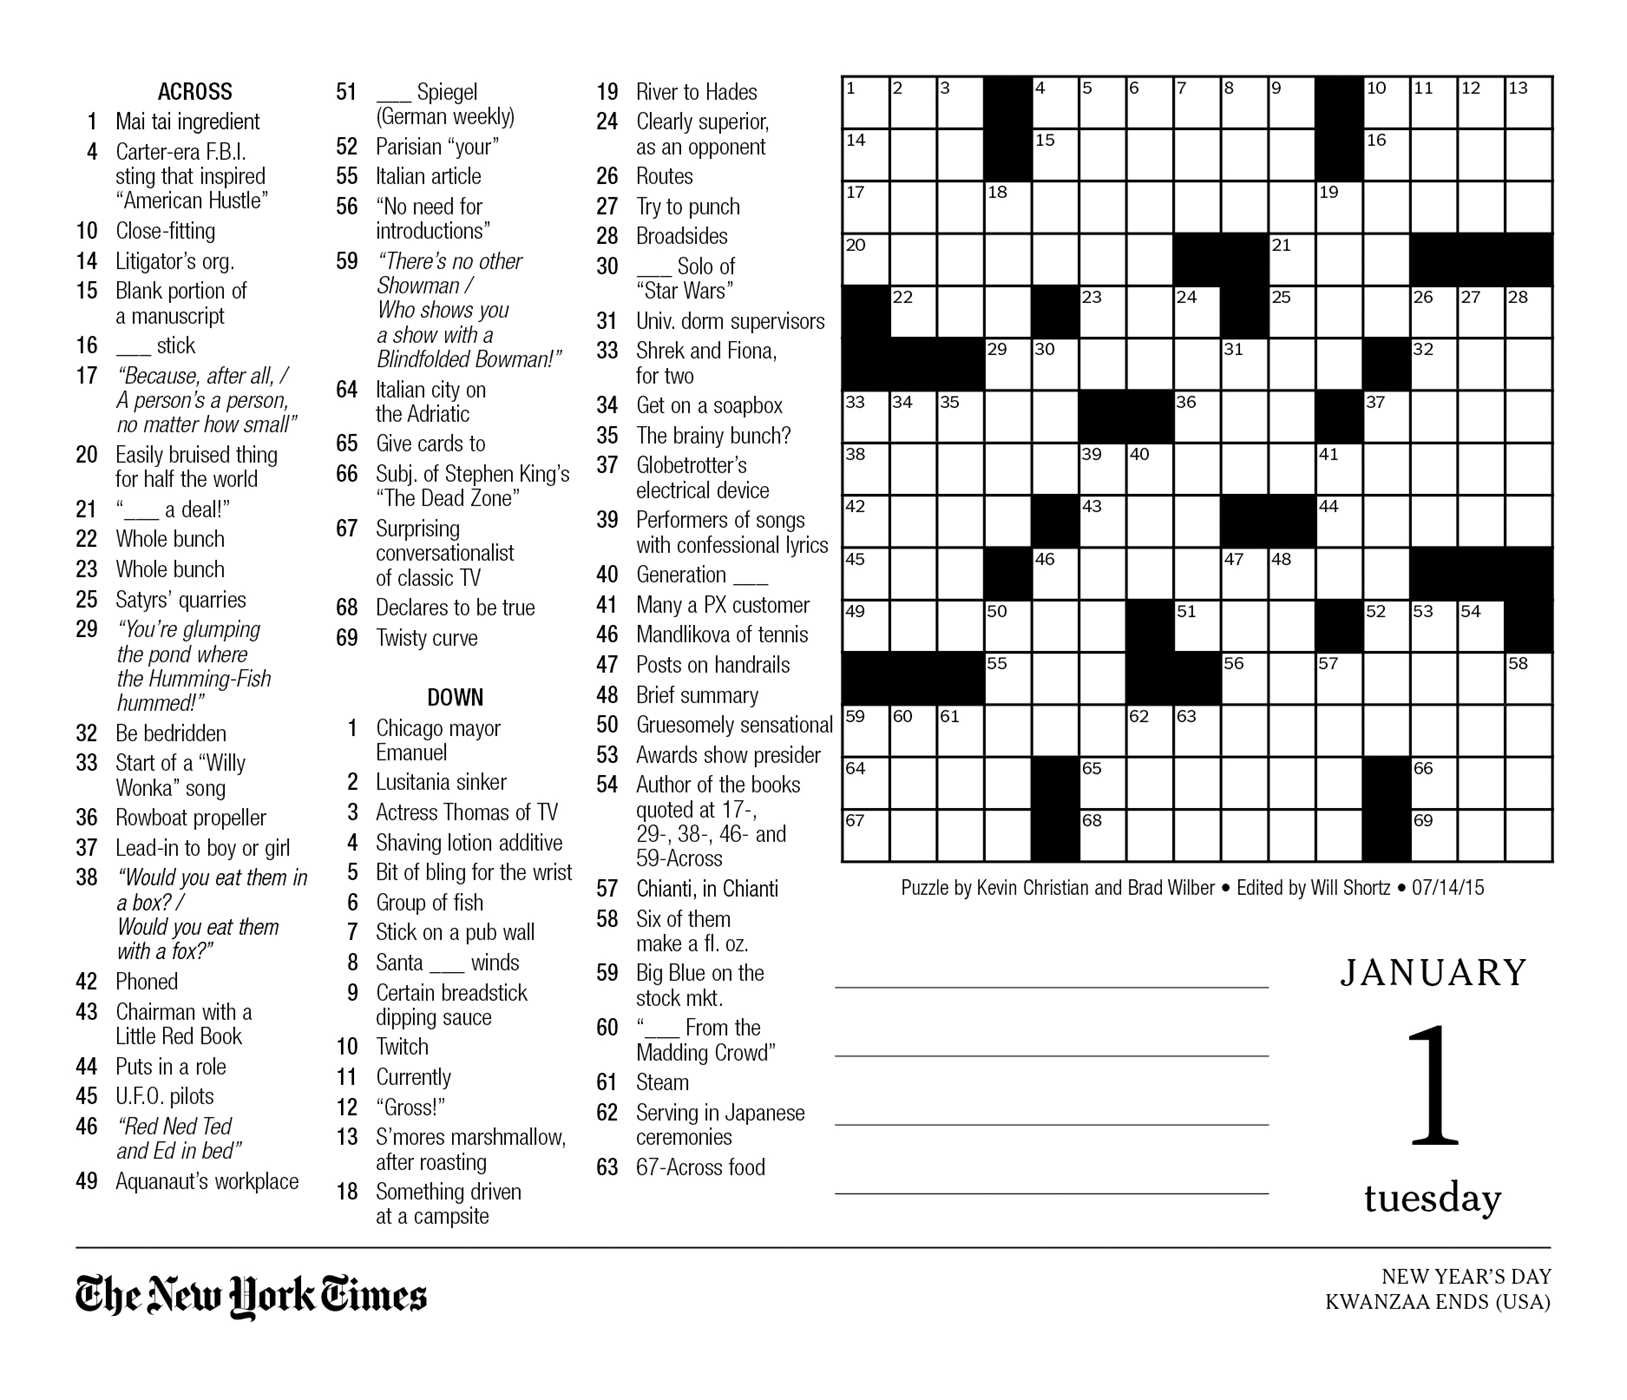 image about La Times Crossword Printable called The Clean York Instances Crossword Puzzles 2019 Working day-in the direction of-Working day